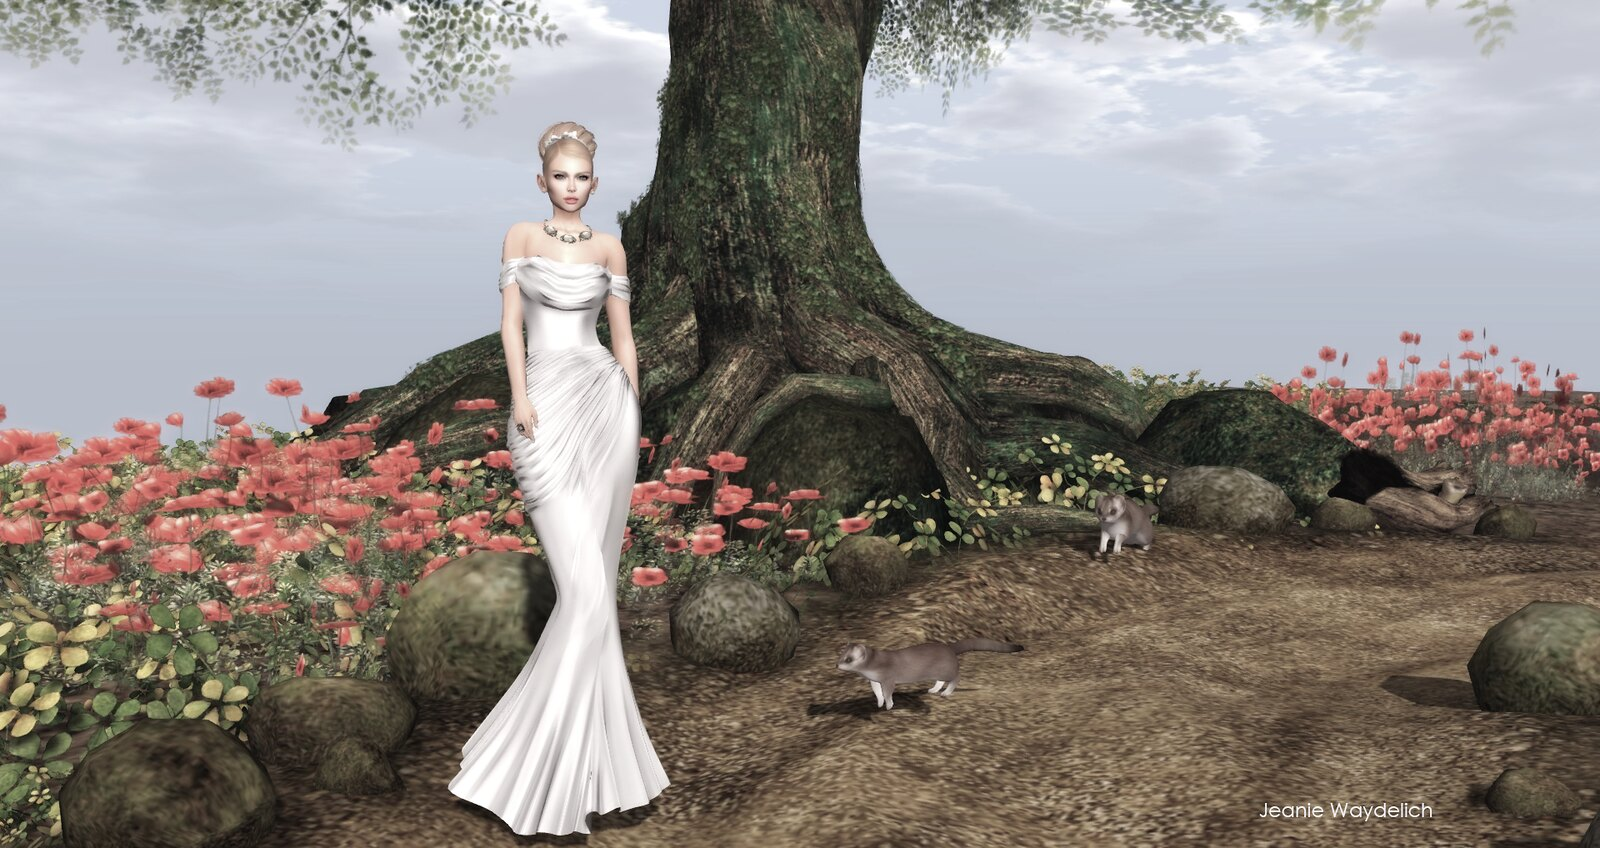 LOTD - 926 - The Royal Way